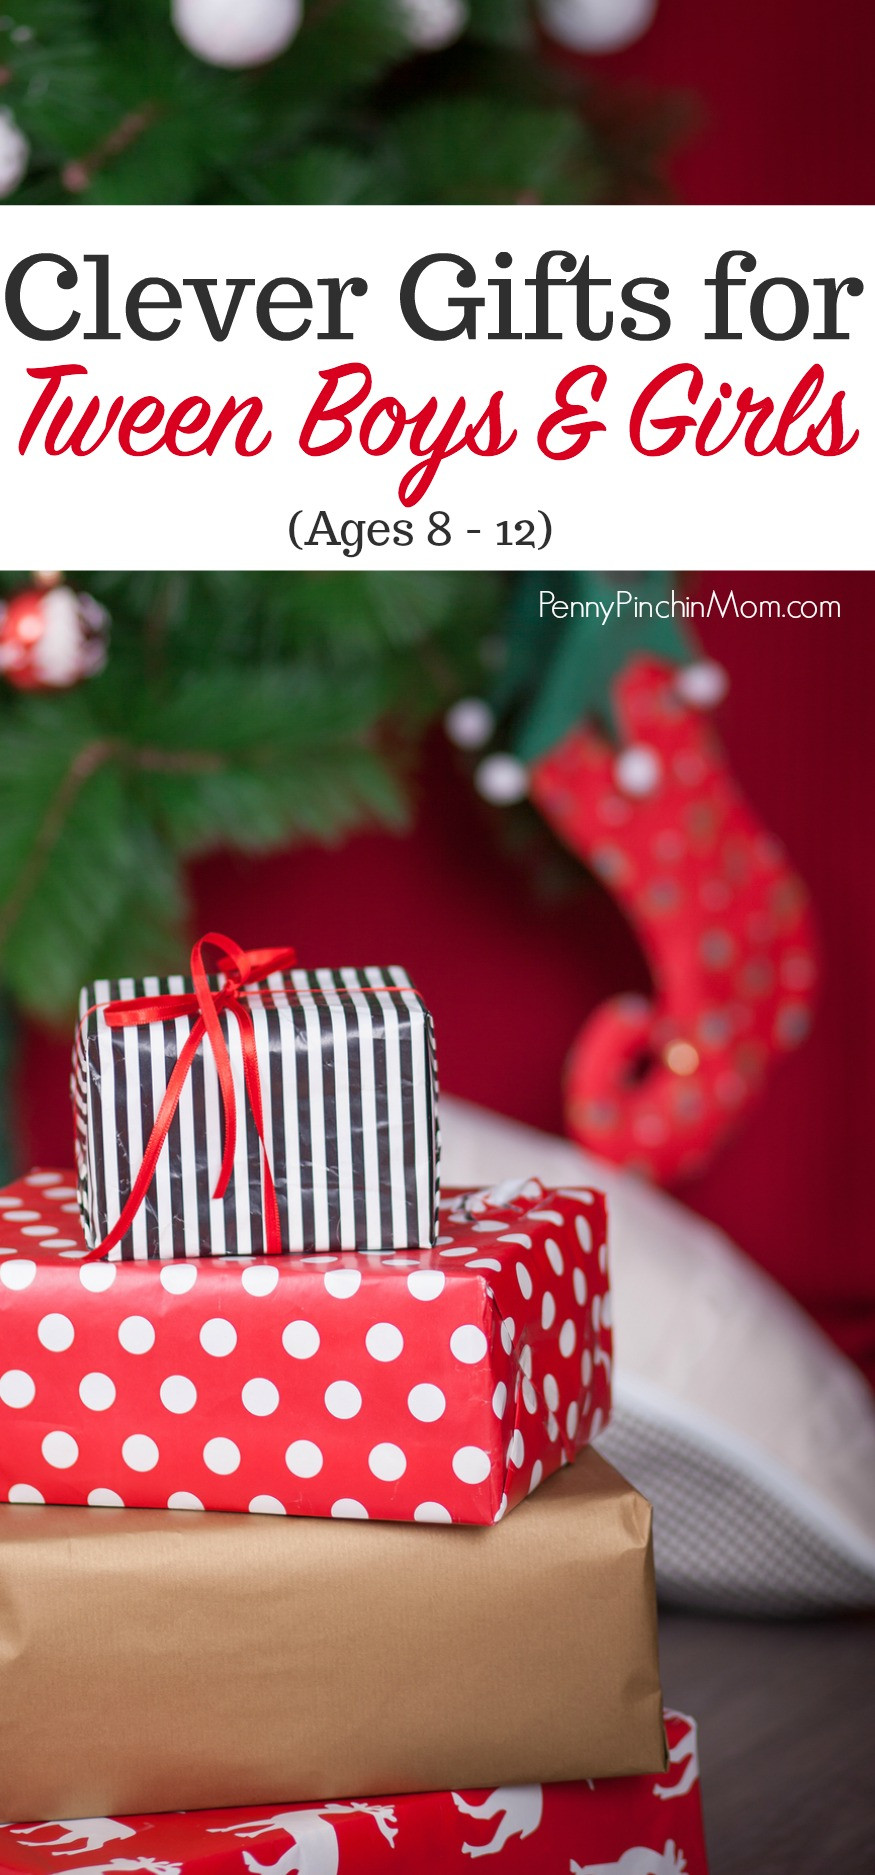 Best ideas about Gift Ideas For Boys Age 12 . Save or Pin Gift Ideas for Kids Ages 8 12 For Girls and Boys Now.